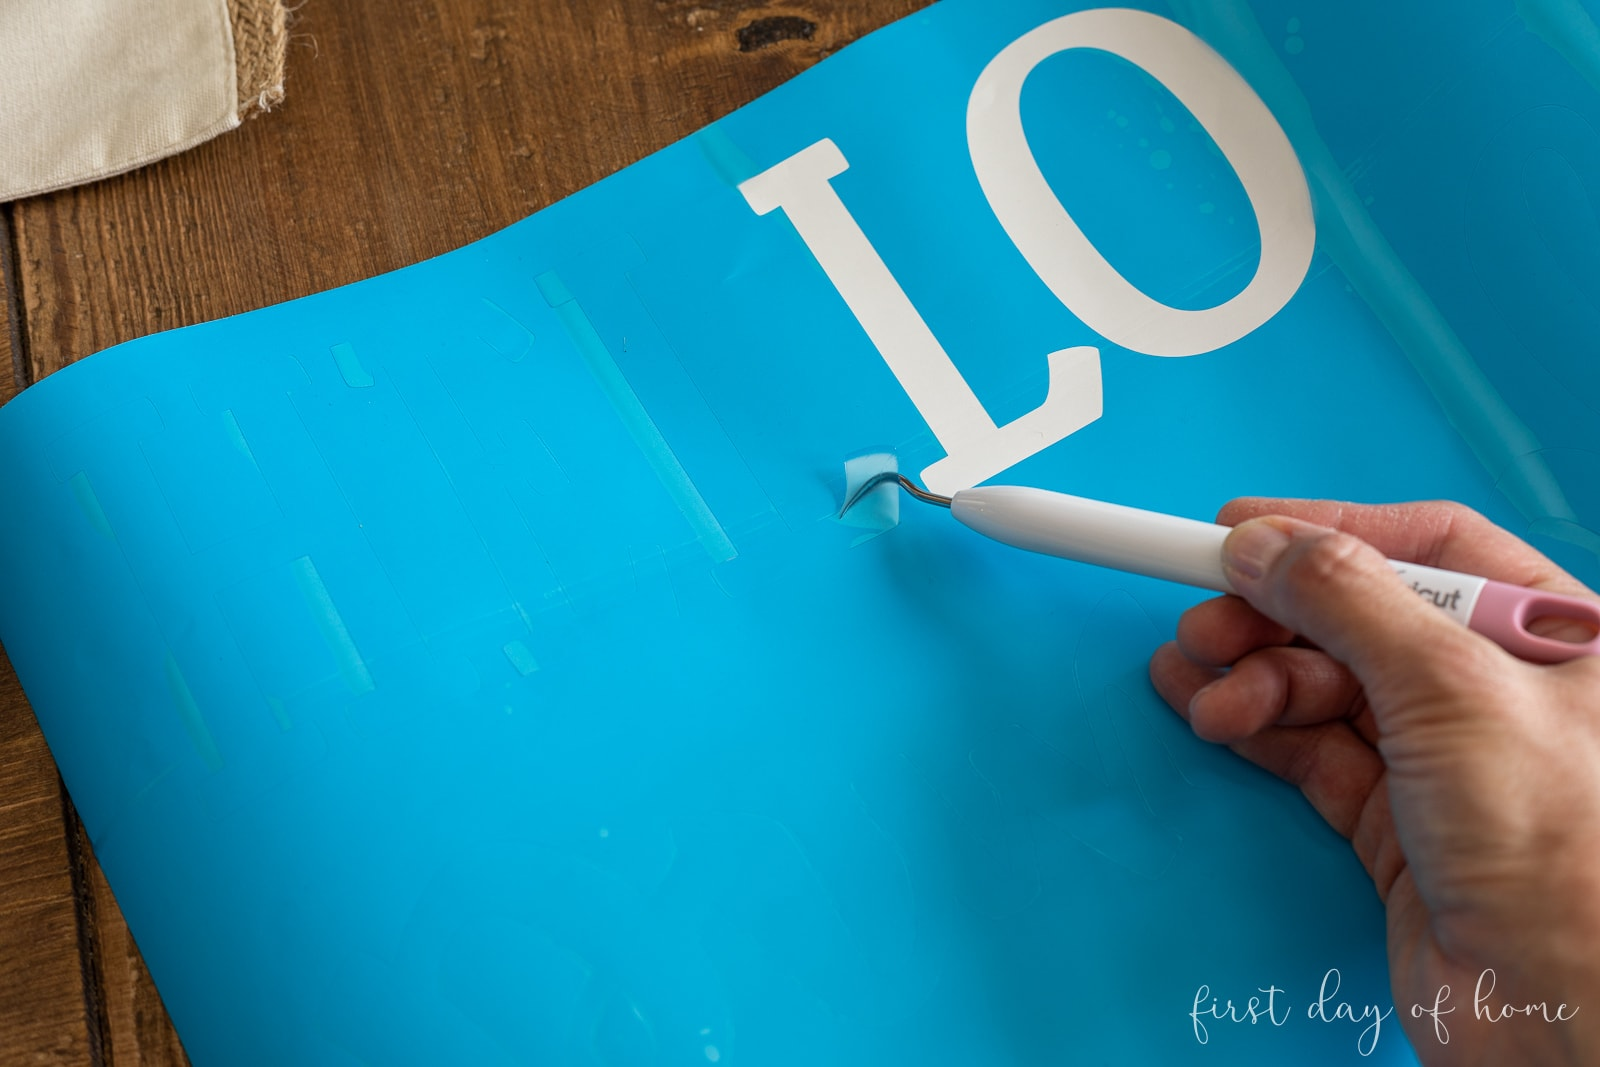 Weeding the letters from the stencil film